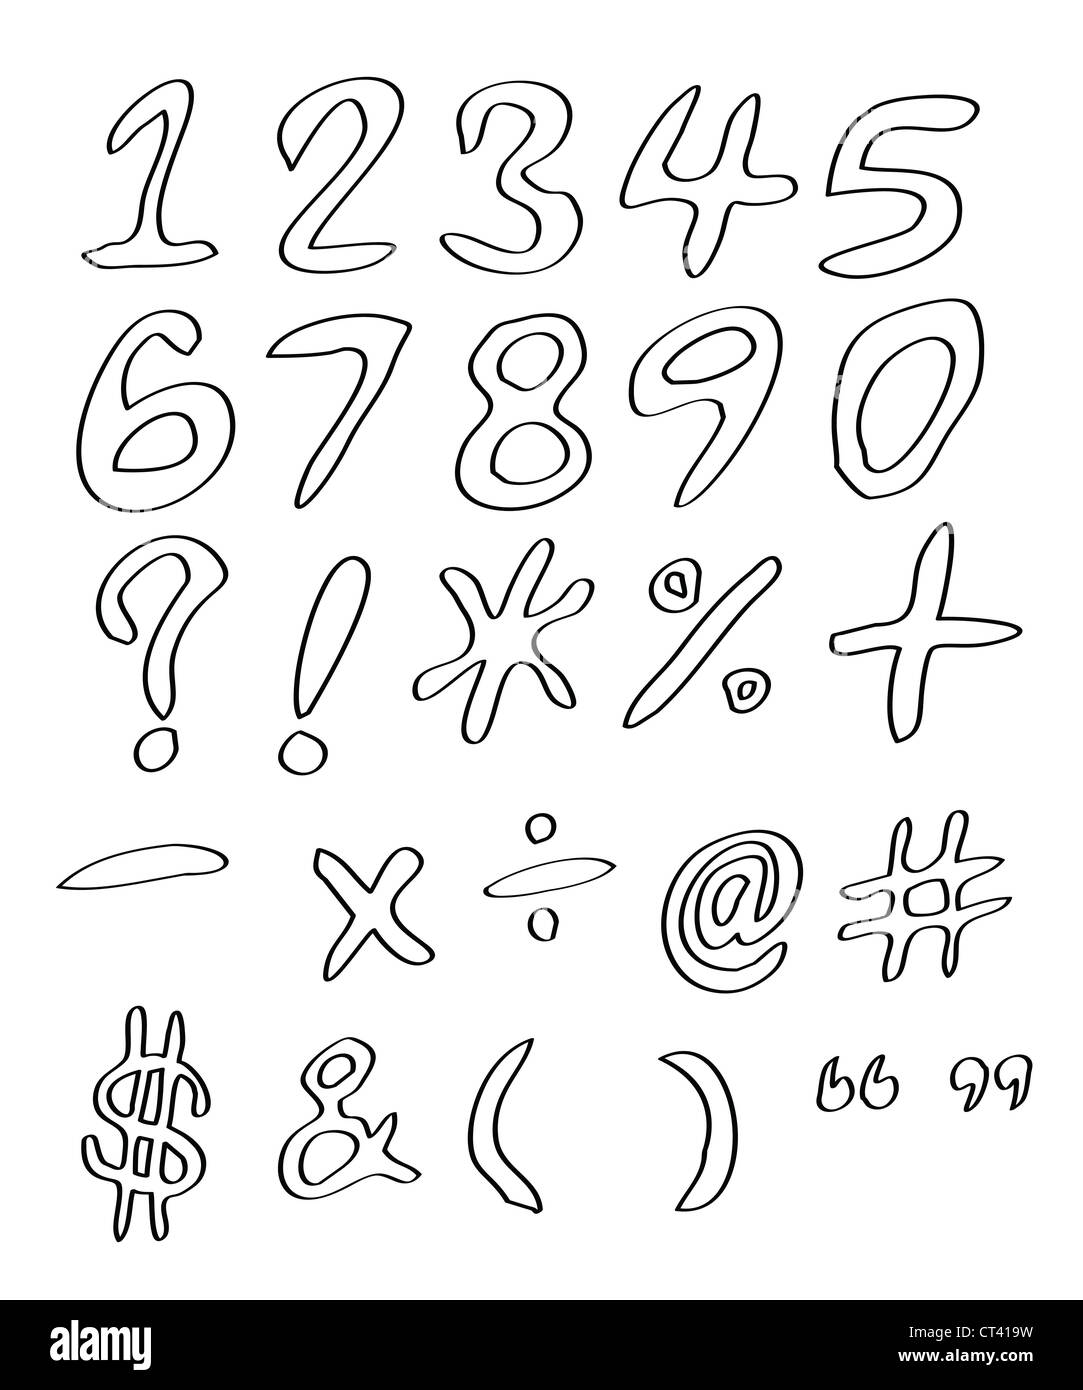 Handwritten Numbers With Symbols